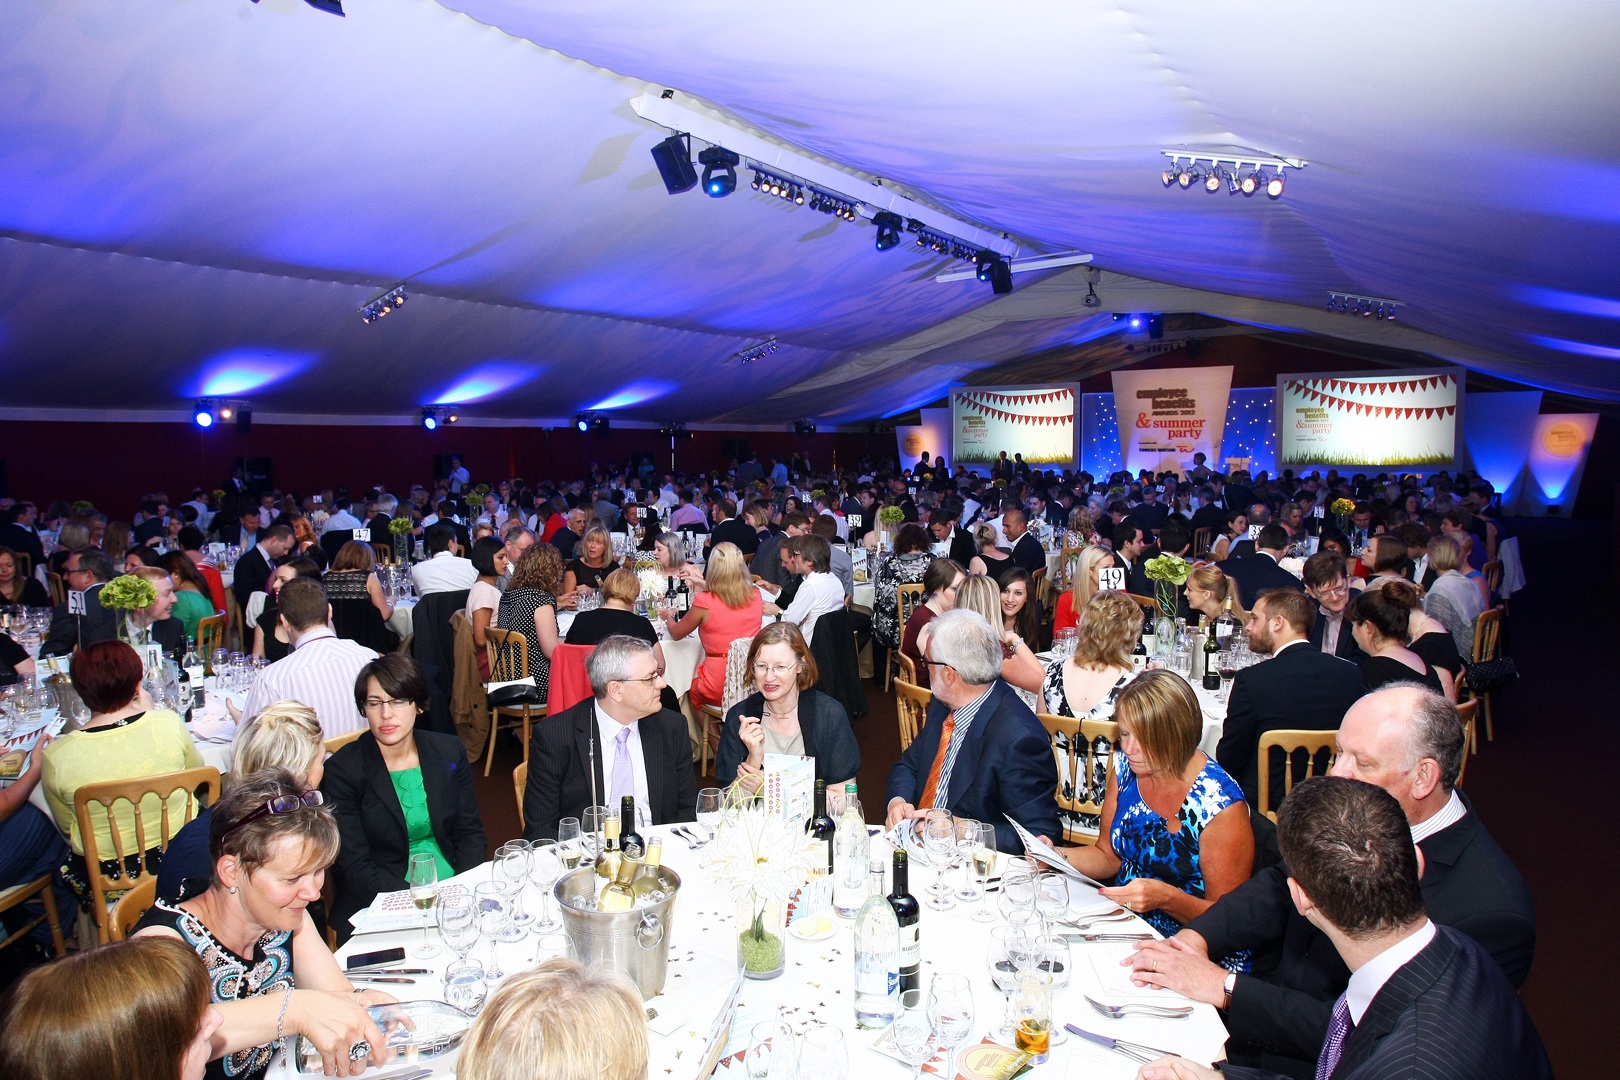 Employee Benefits Awards 2012